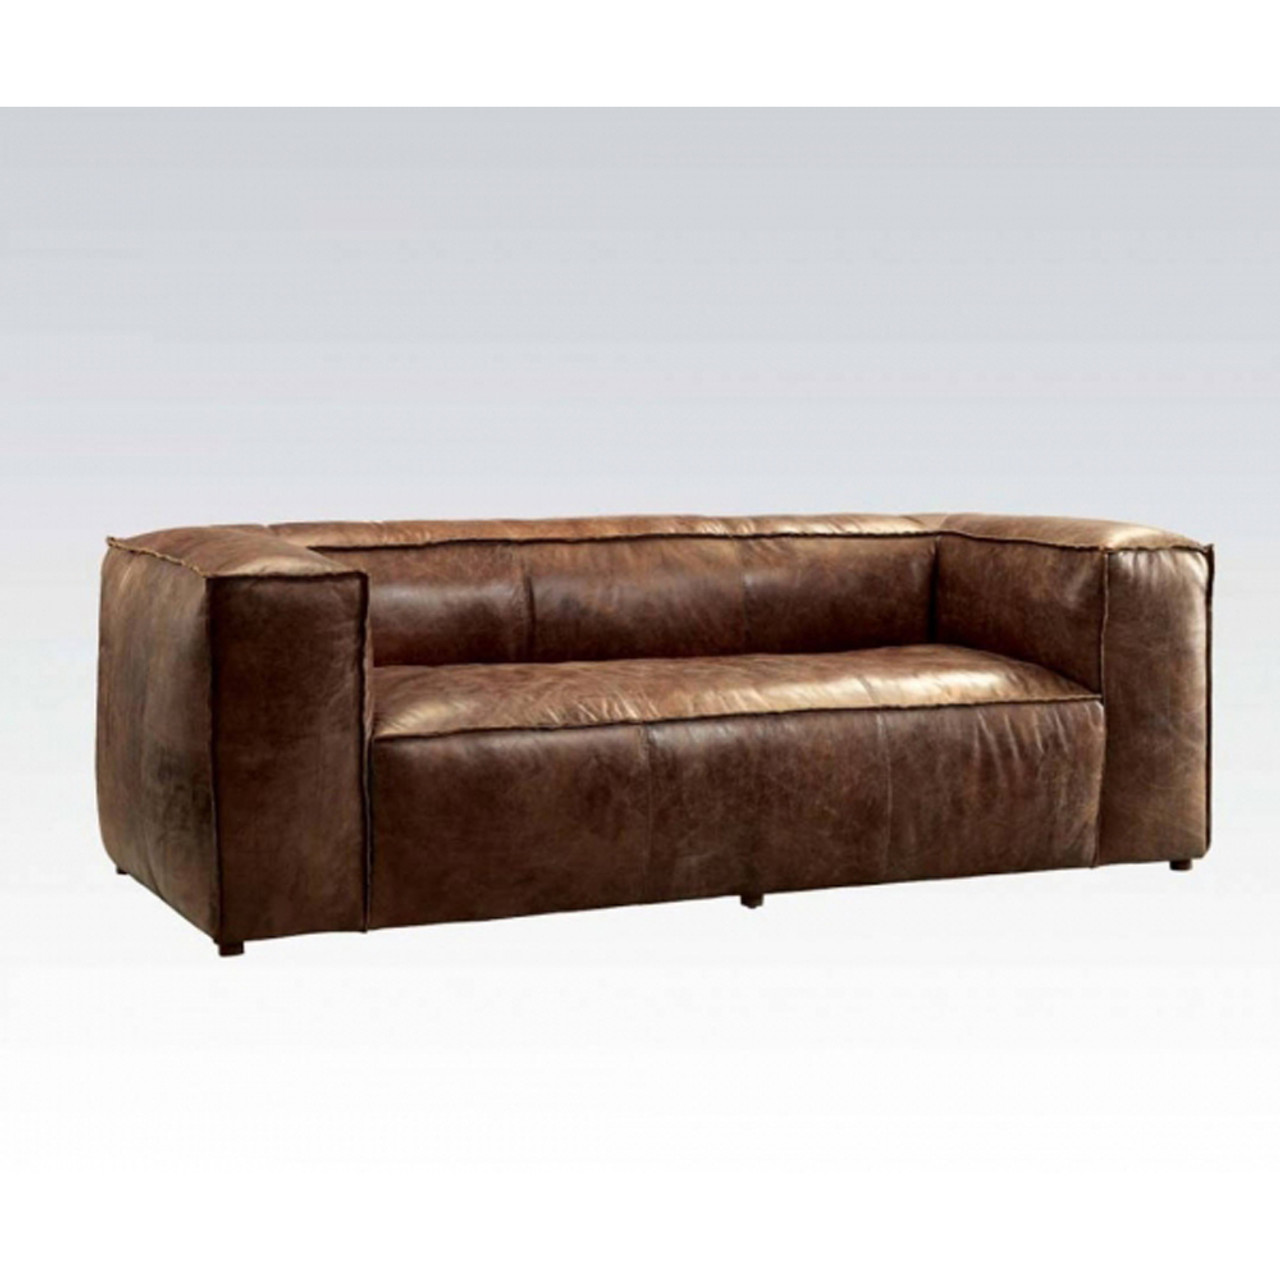 Retro Sofa Leather Brancaster Retro Brown Leather Sofa